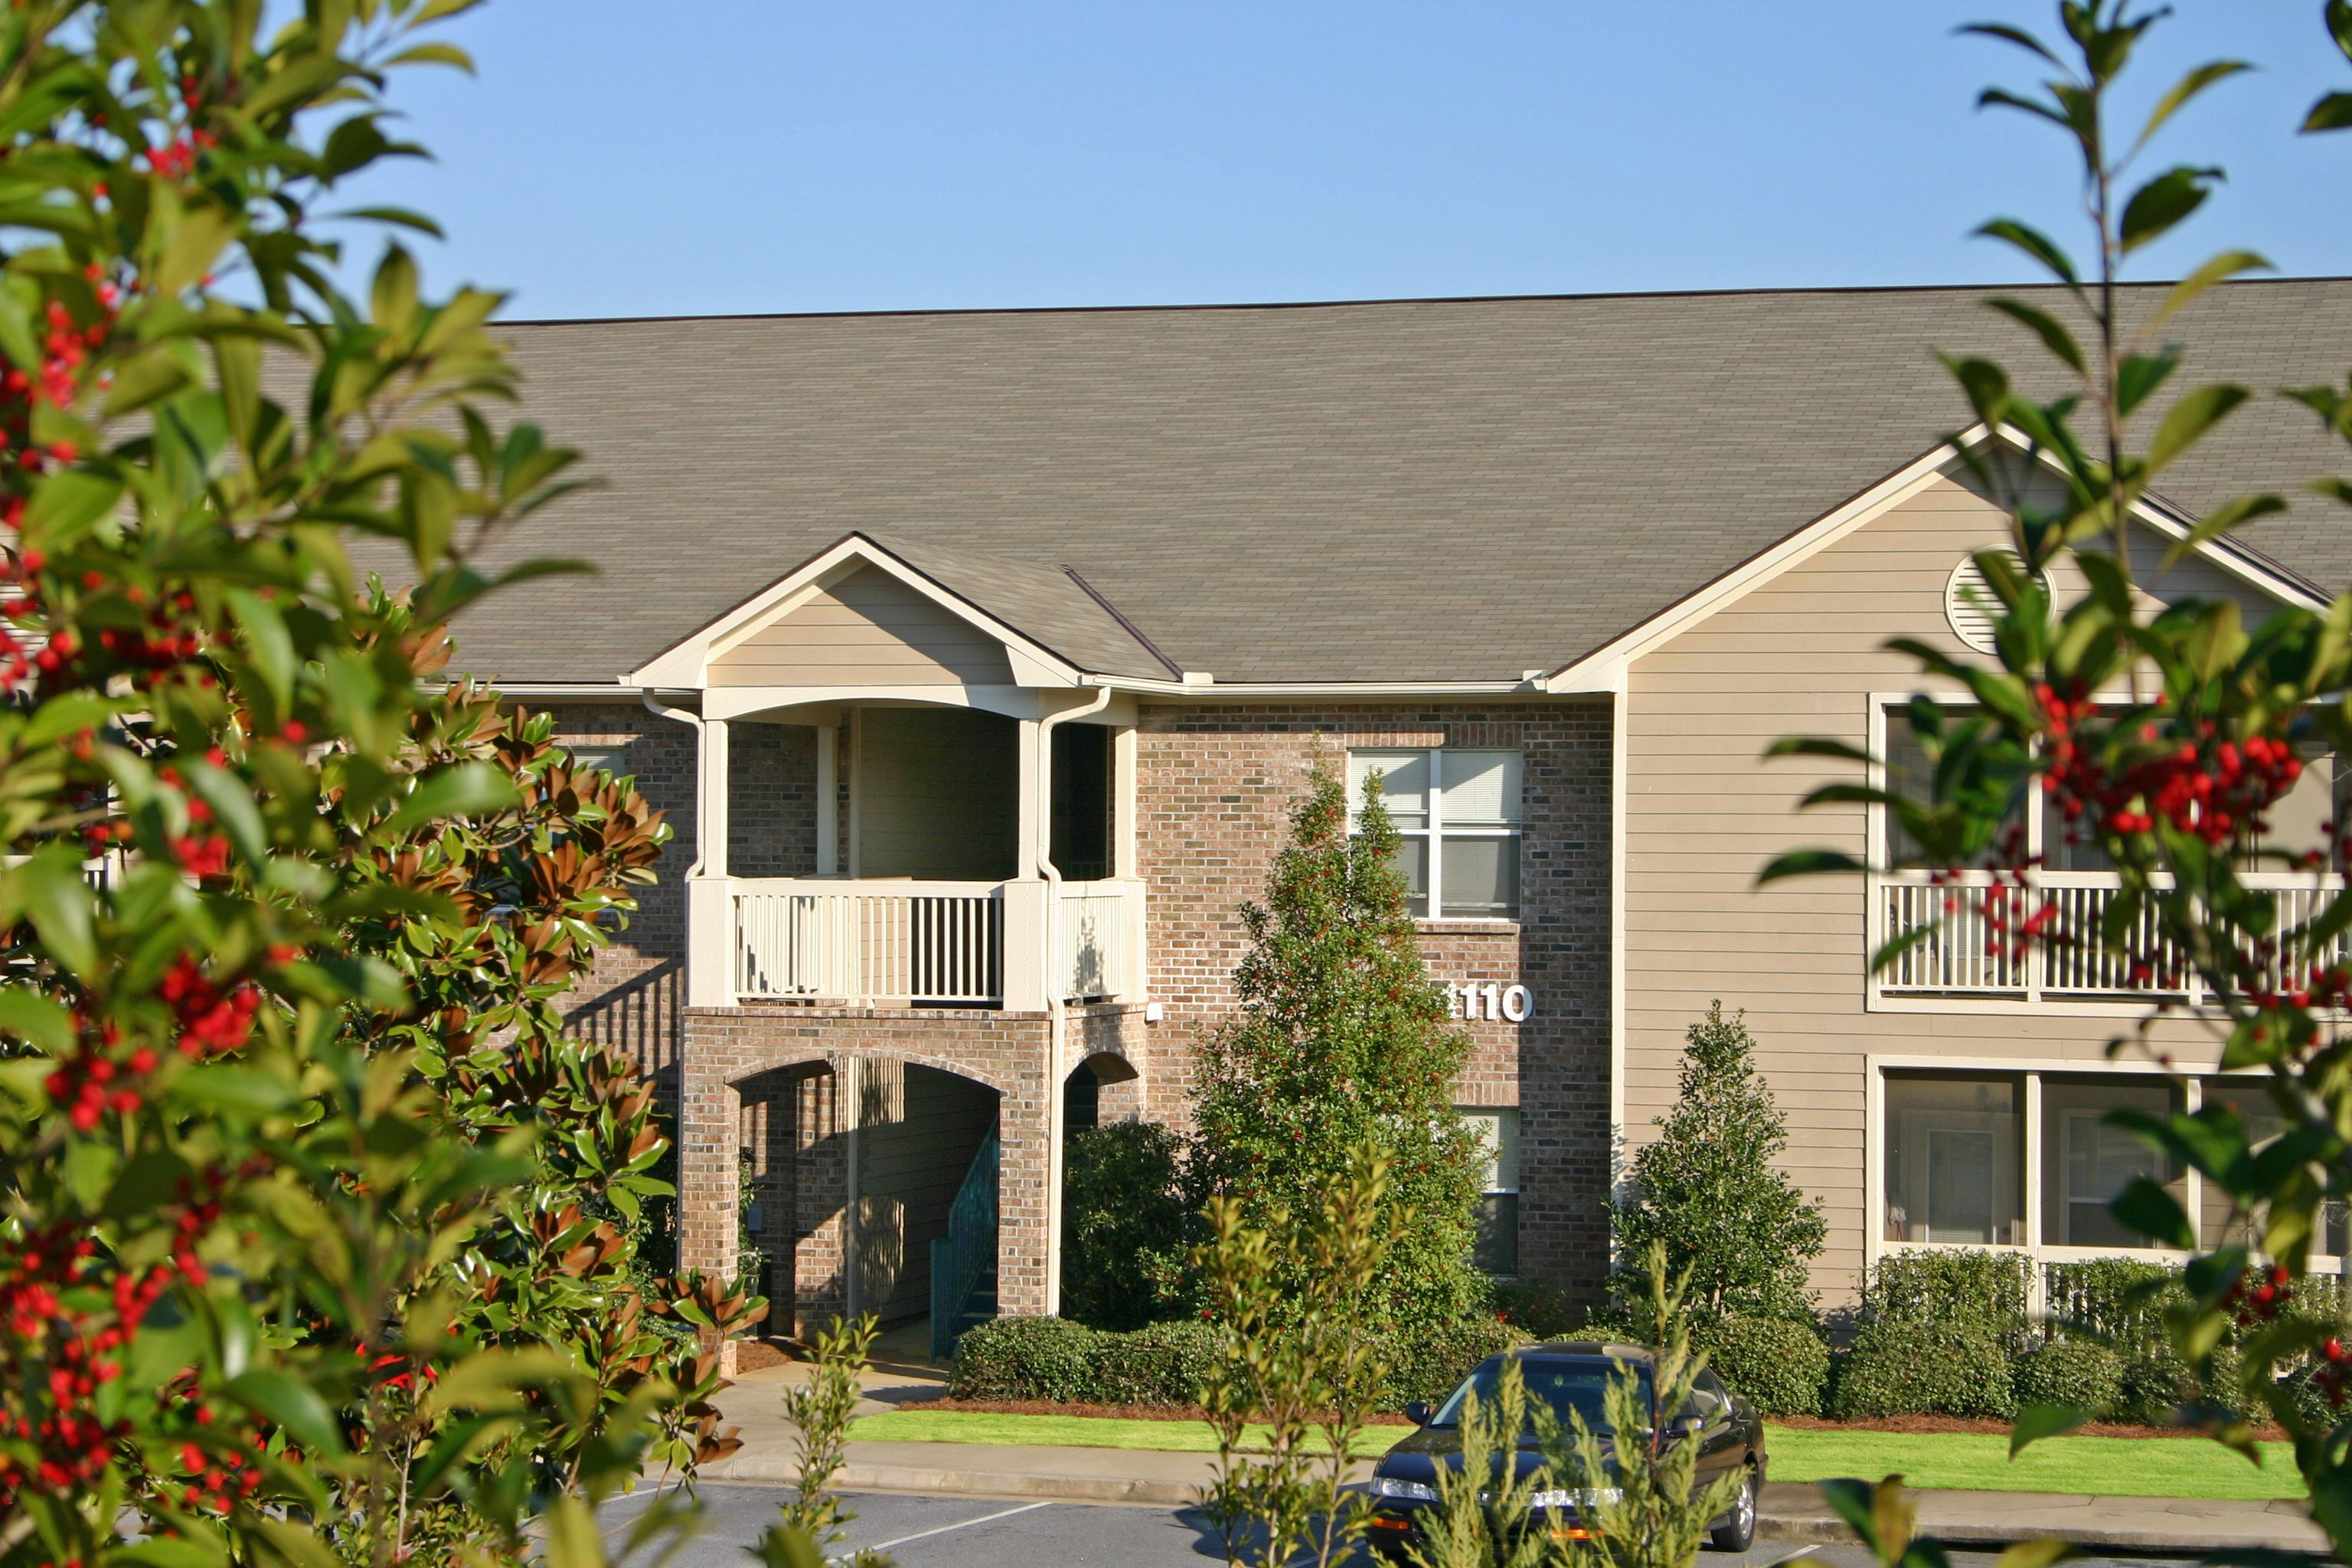 The Lakes Apartments in Columbus, GA House styles